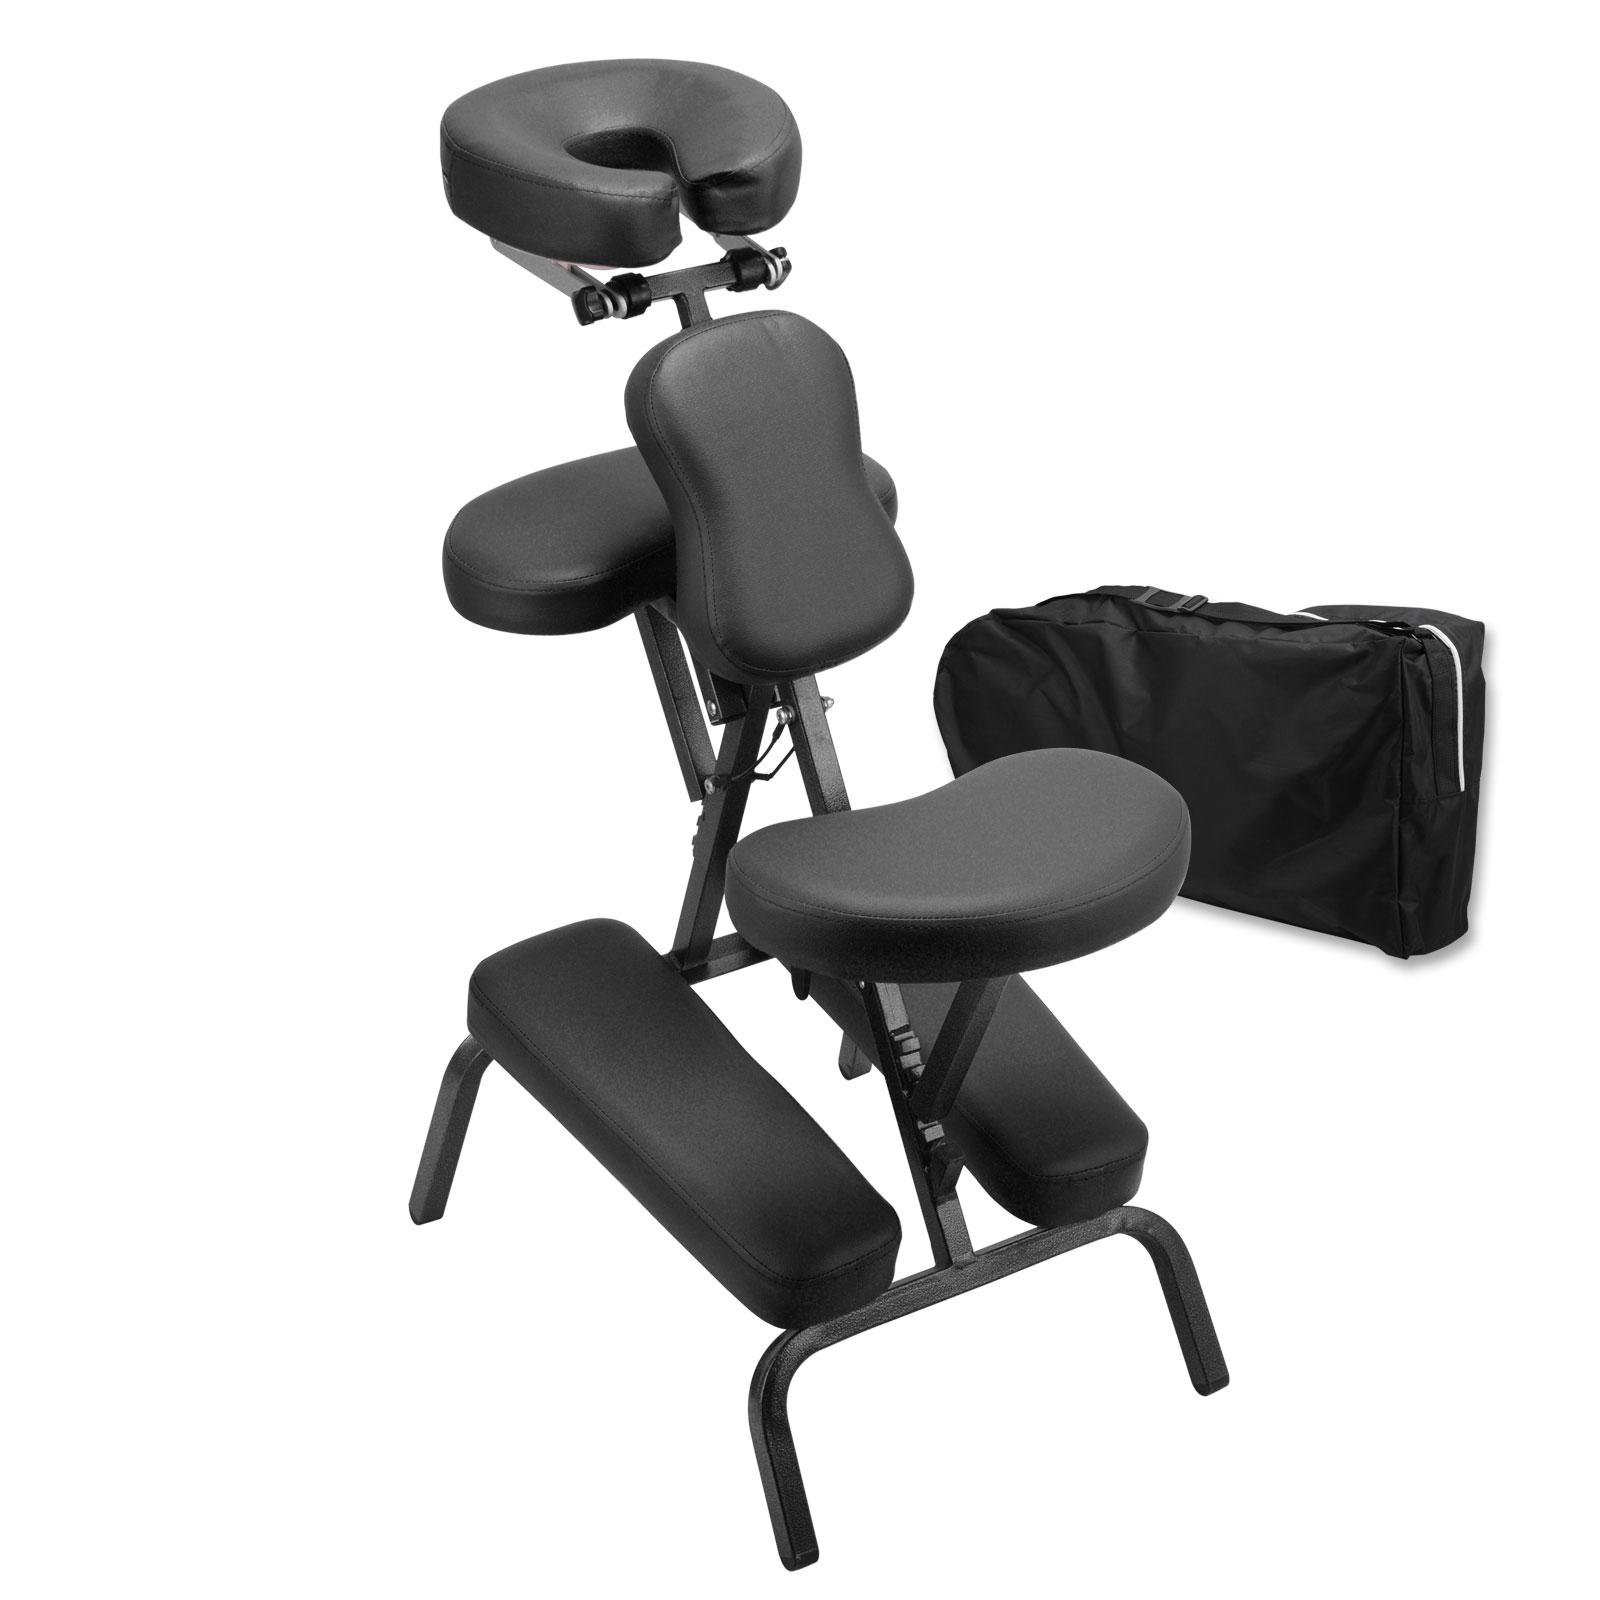 Permalink to Best Of Massage Chair Manufacturers Pics